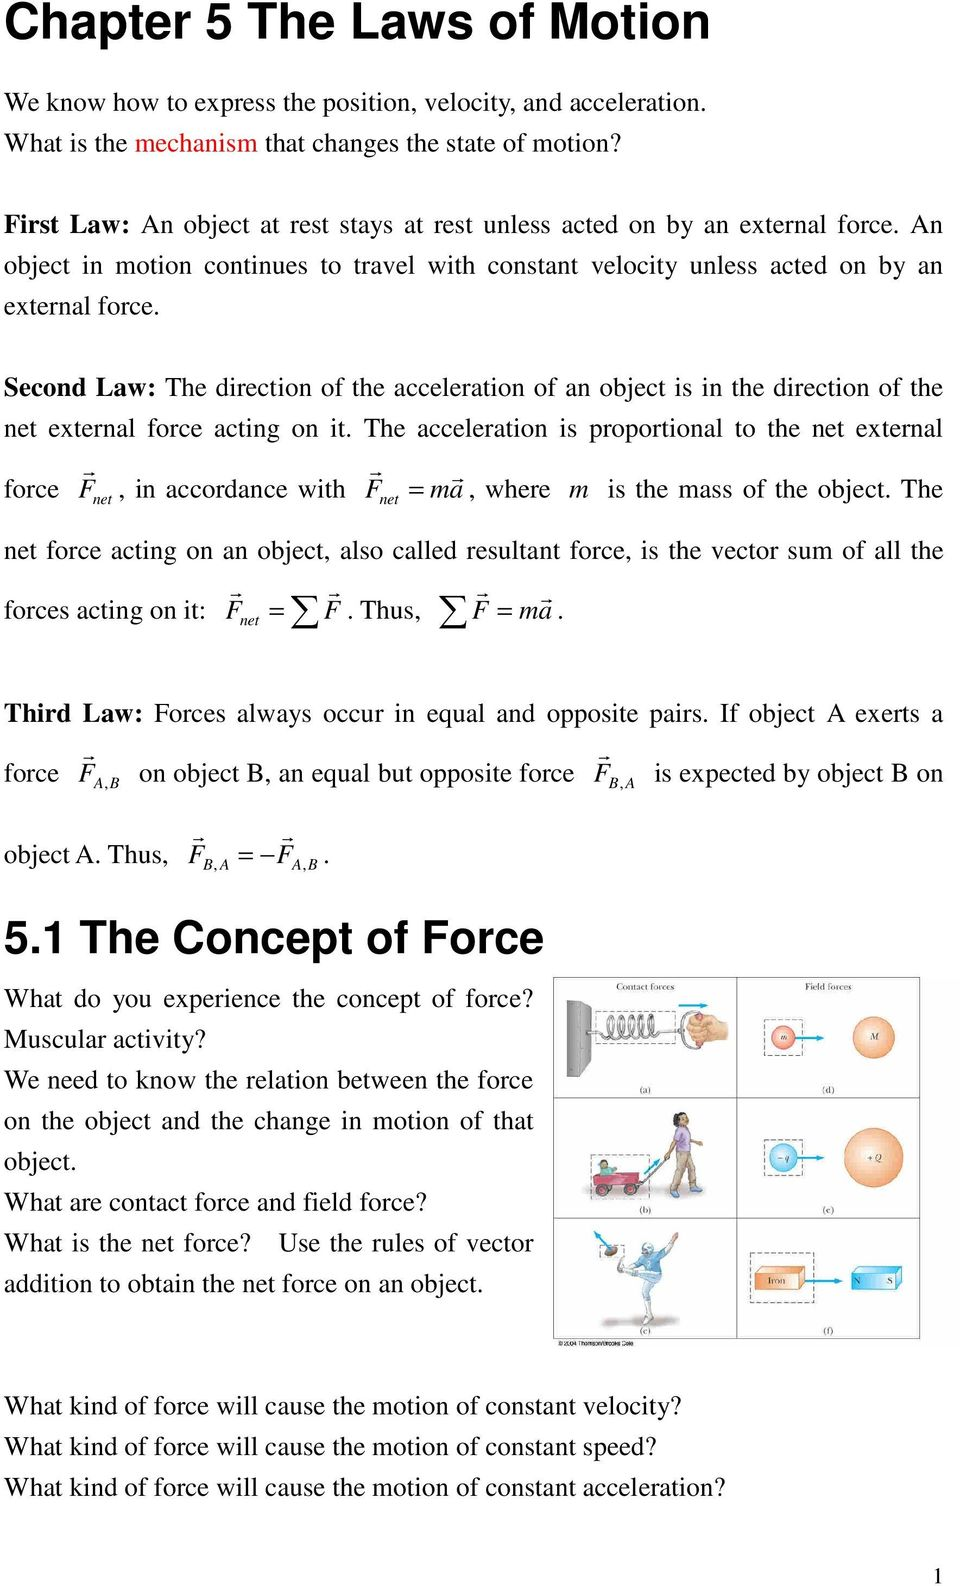 Chapter 5 The Laws Of Motion Pdf External Forces That Act On An Object As A Result Its He Acceleatin I Pptinal T Net Extenal Fce In Accdance With